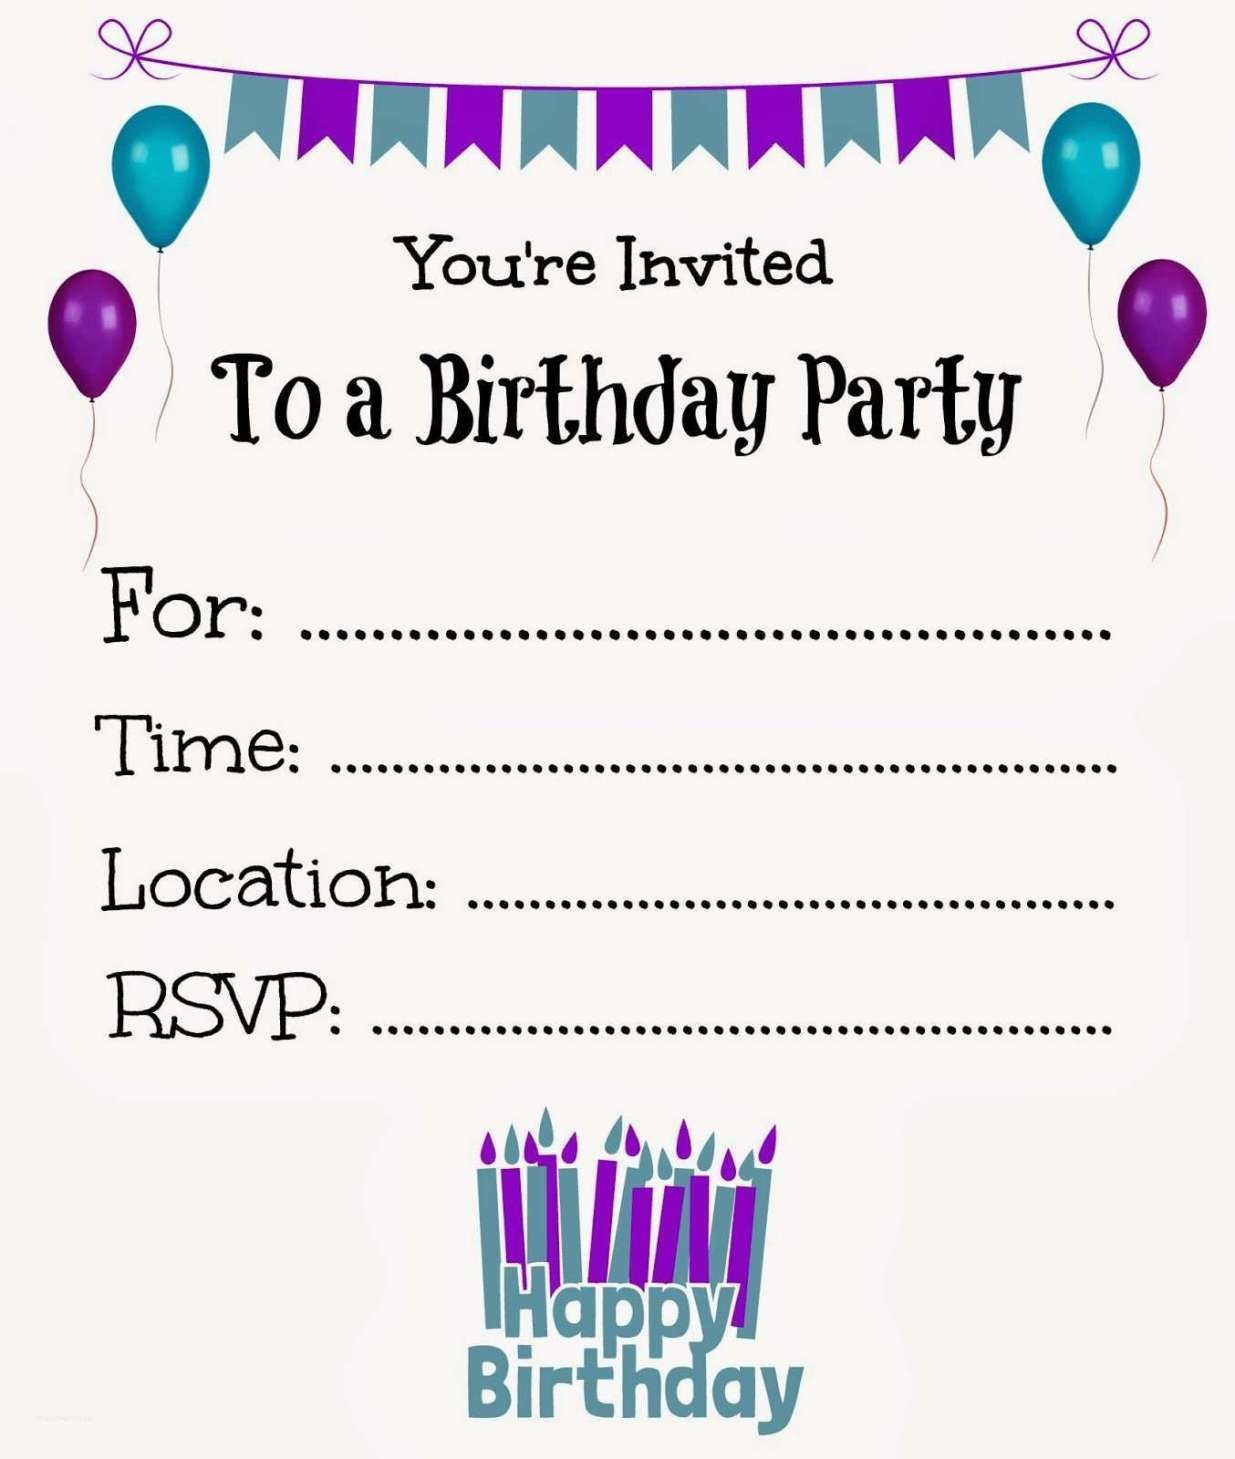 New Free Online Printable Birthday Party Invitations | Online - Make Printable Party Invitations Online Free